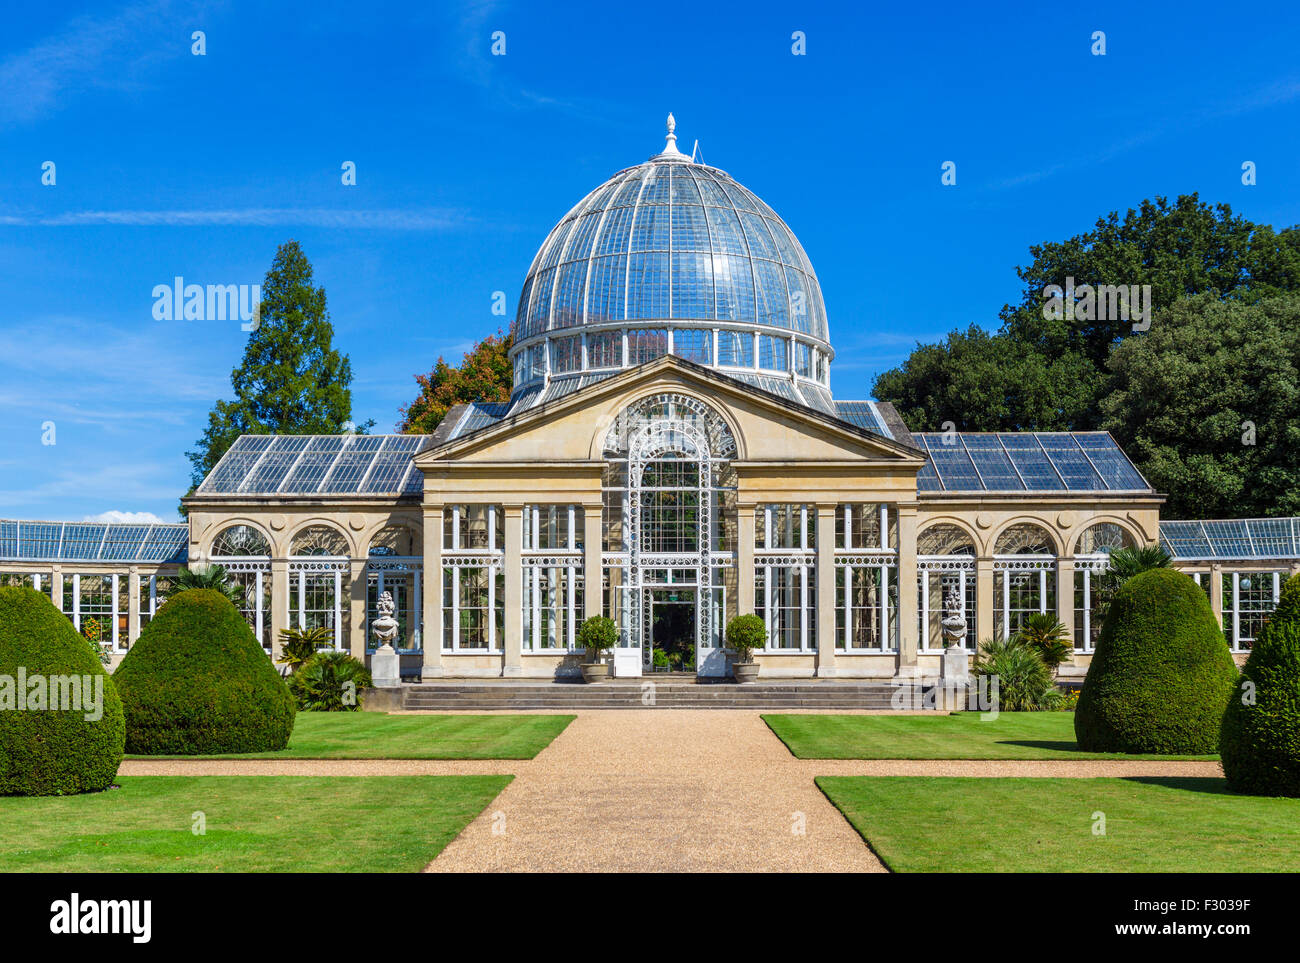 The Great Conservatory in the gardens of Syon House, Syon Park, West London, England, UK - Stock Image